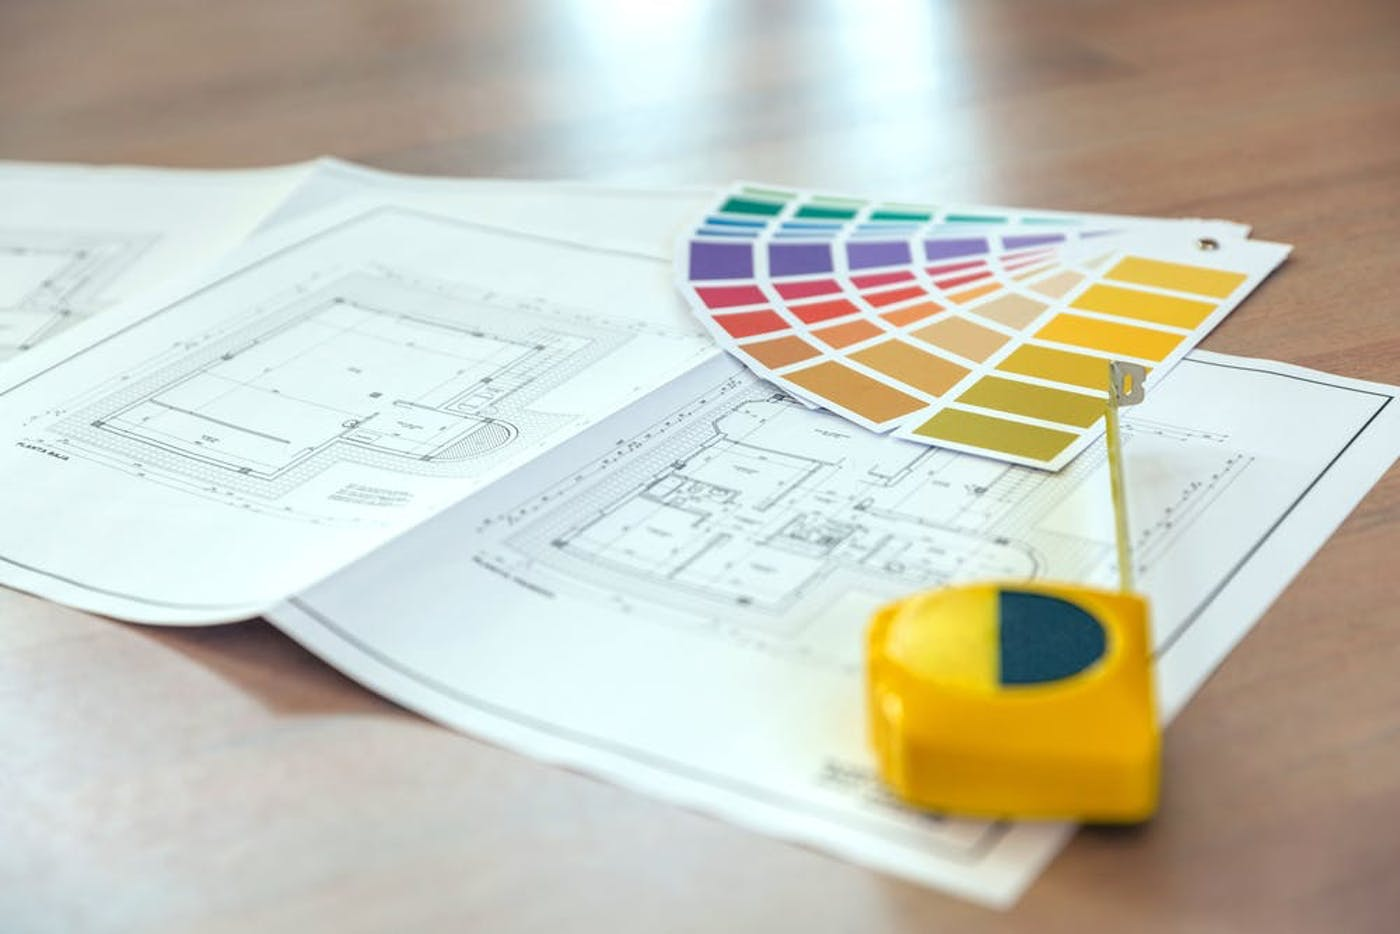 How to prepare for a renovation